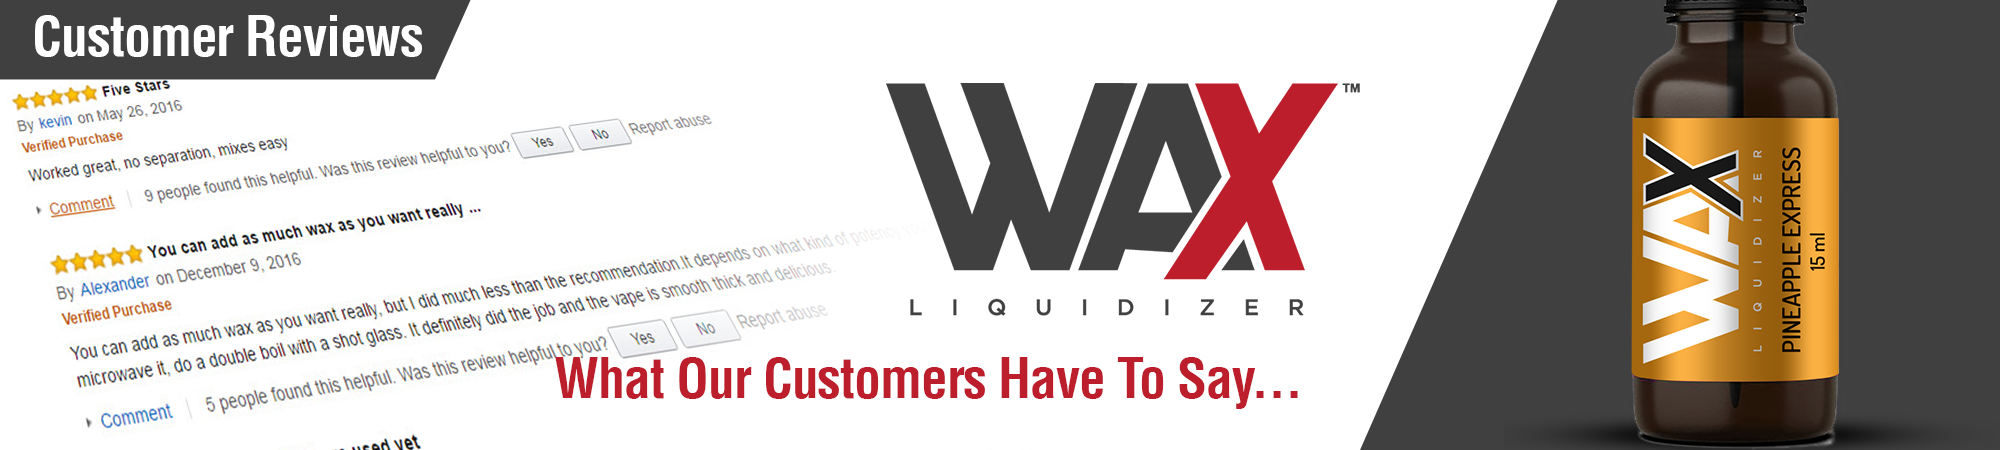 Wax Liquidizer - What Our Customers Have To Say